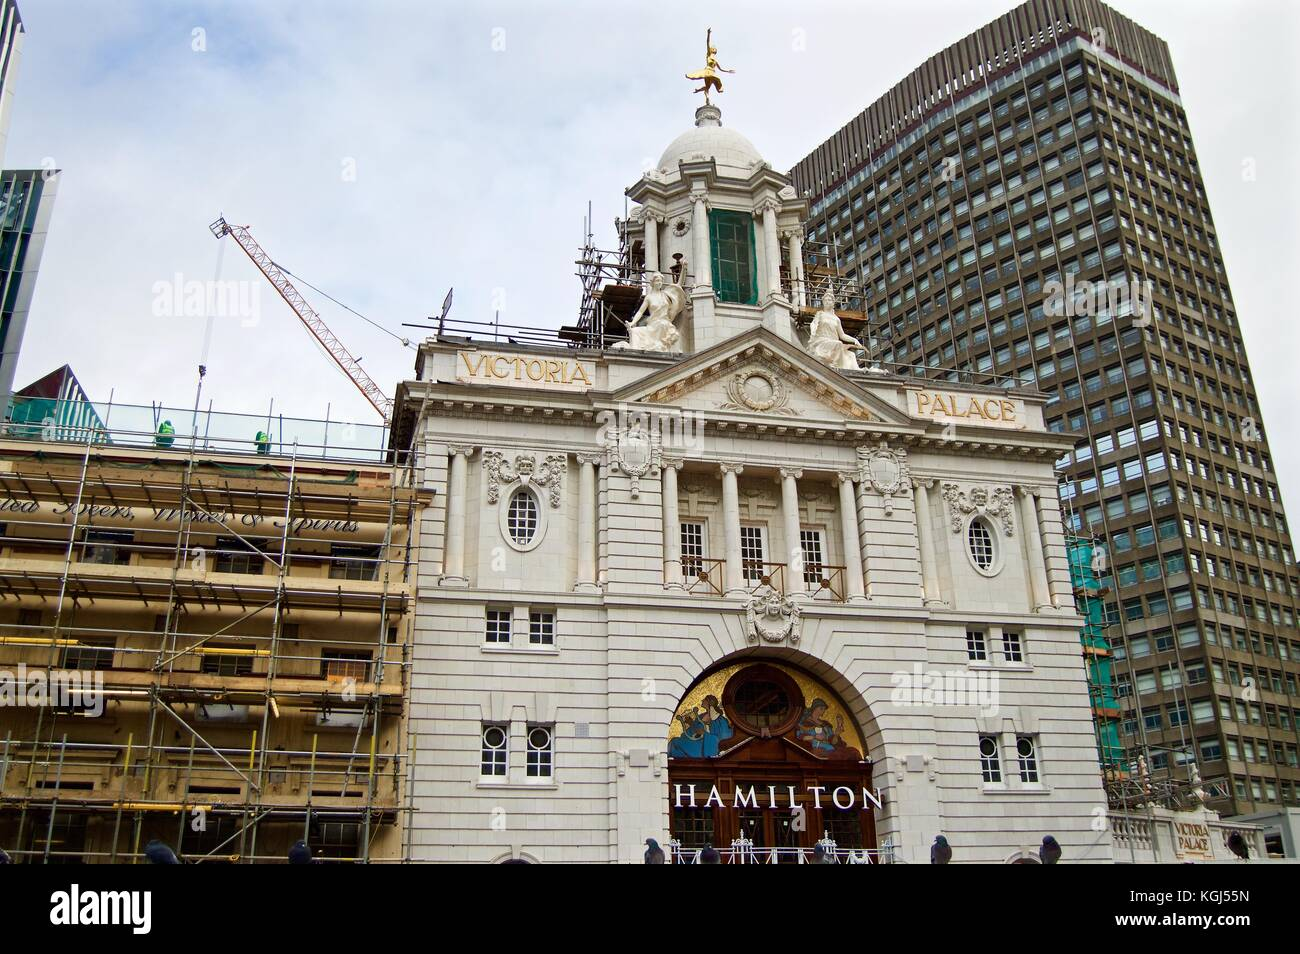 Victoria Palace Theatre undergoing external restoration work with scaffolding on one side, Victoria, London, UK - Stock Image